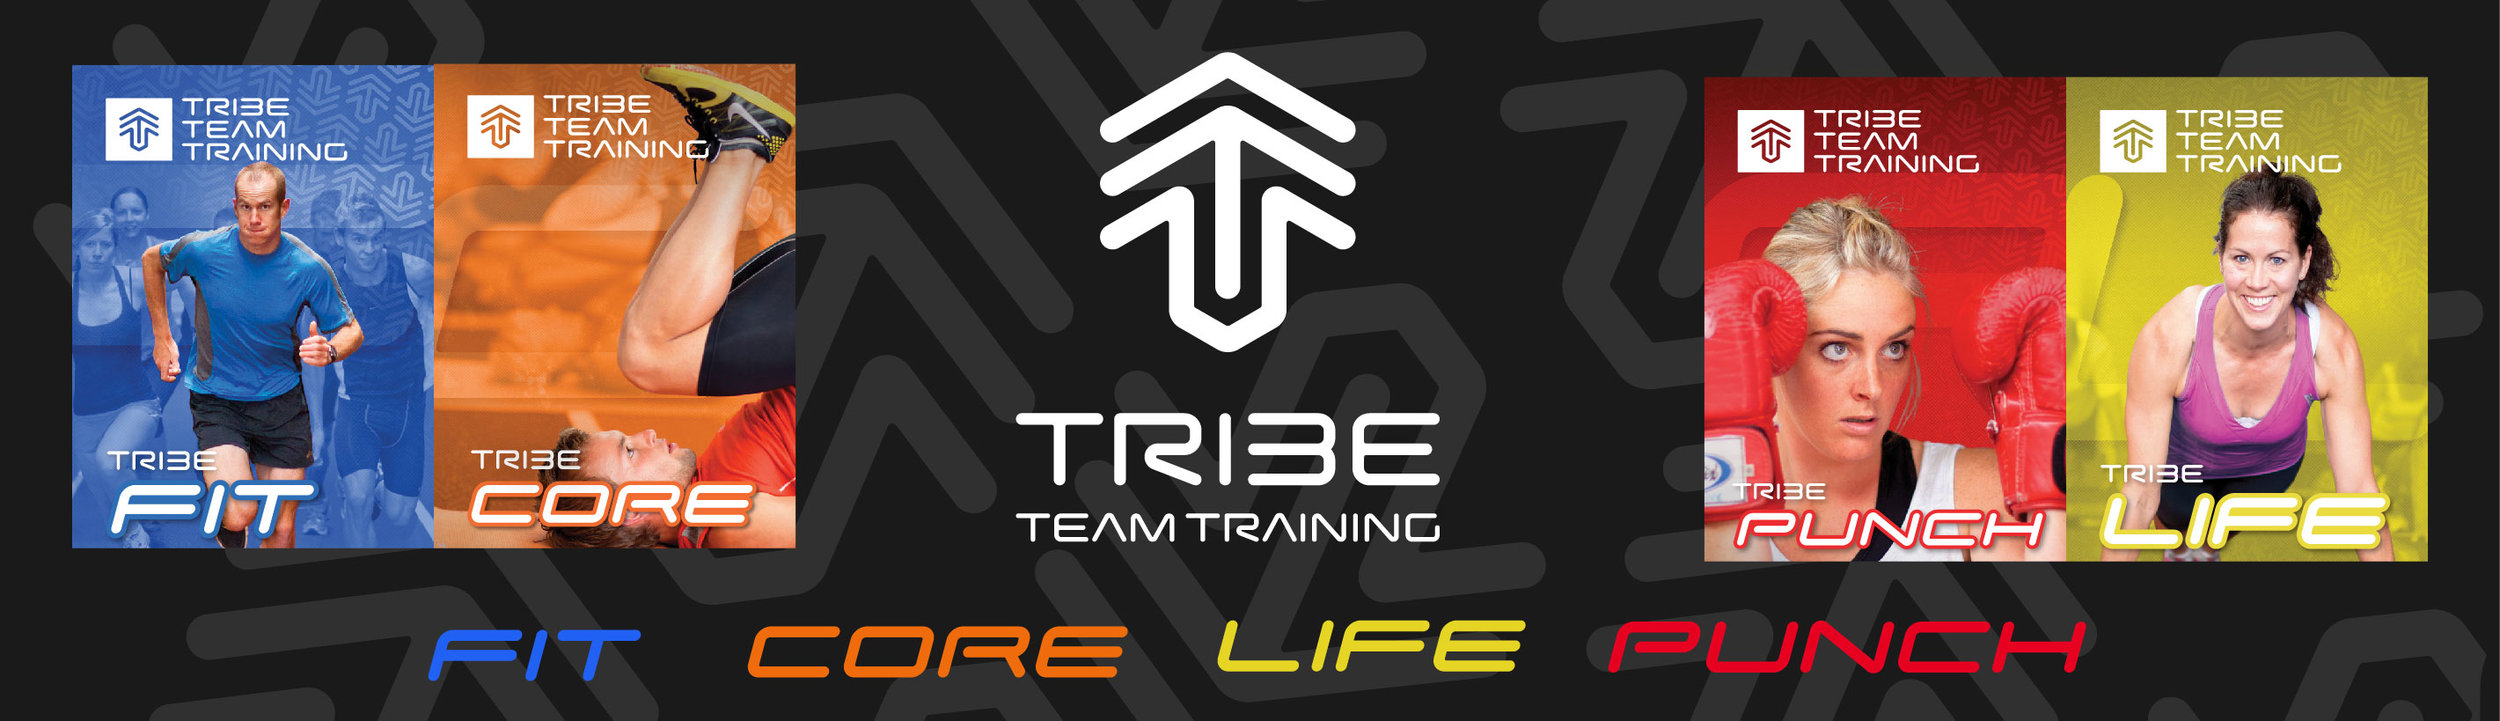 TribeWebsiteBanner-01.jpg